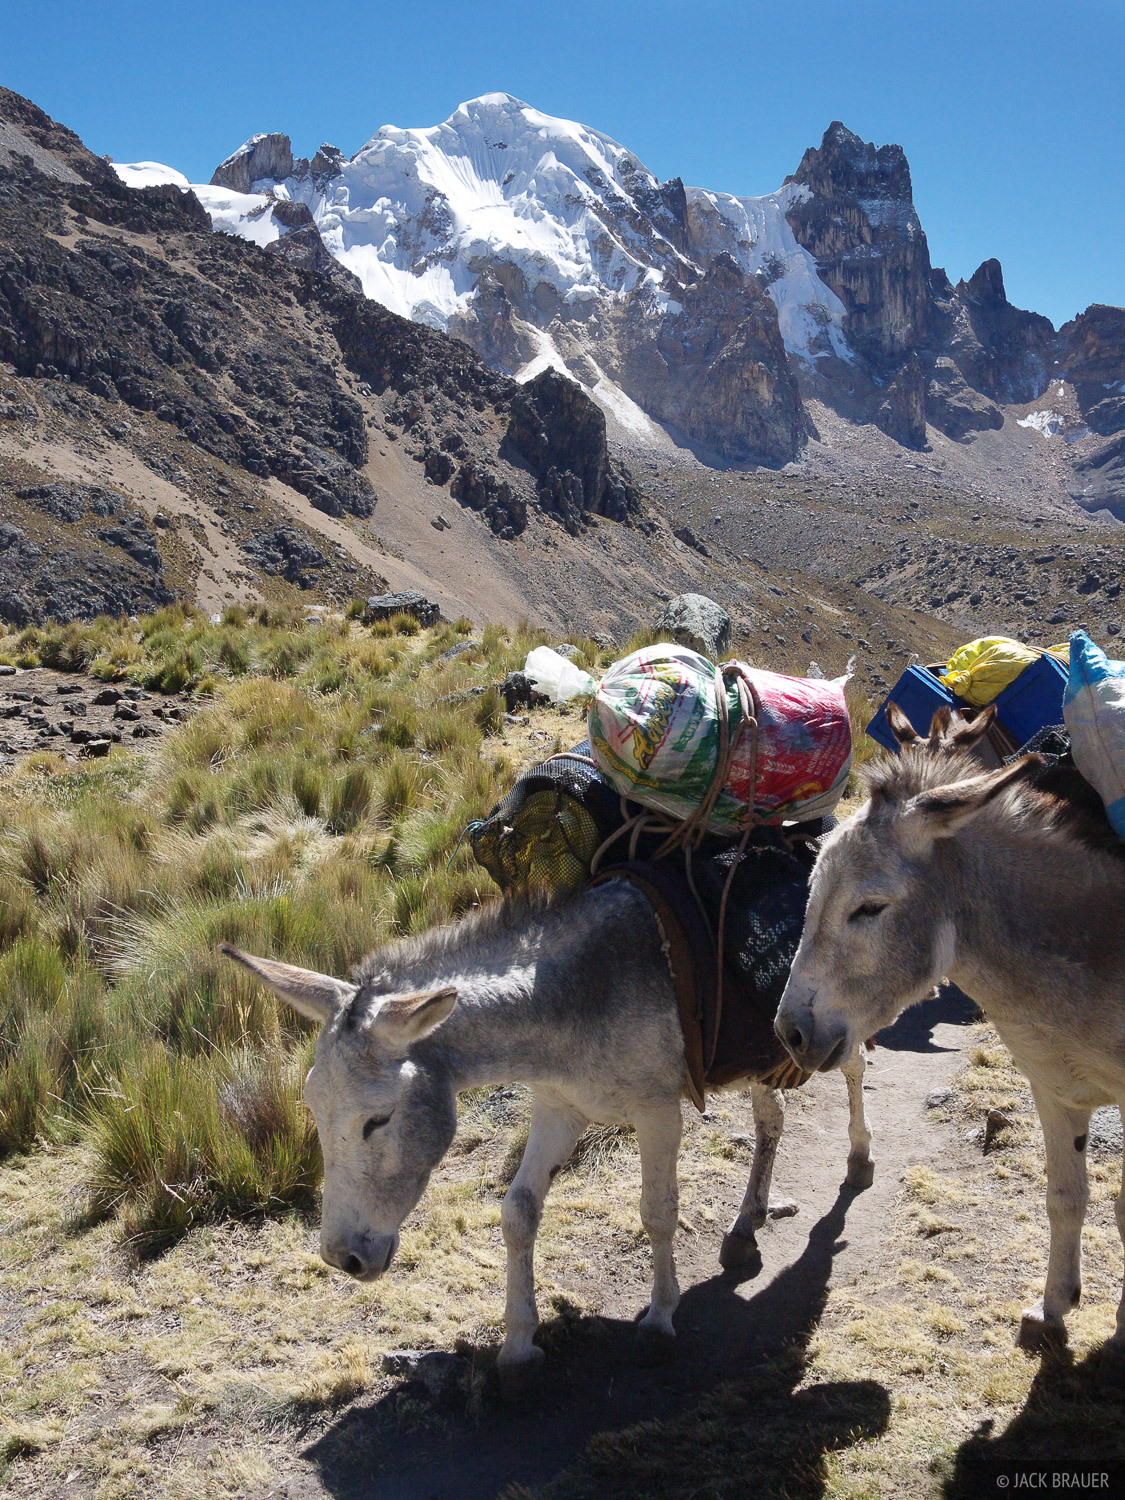 Burros hauling our stuff.